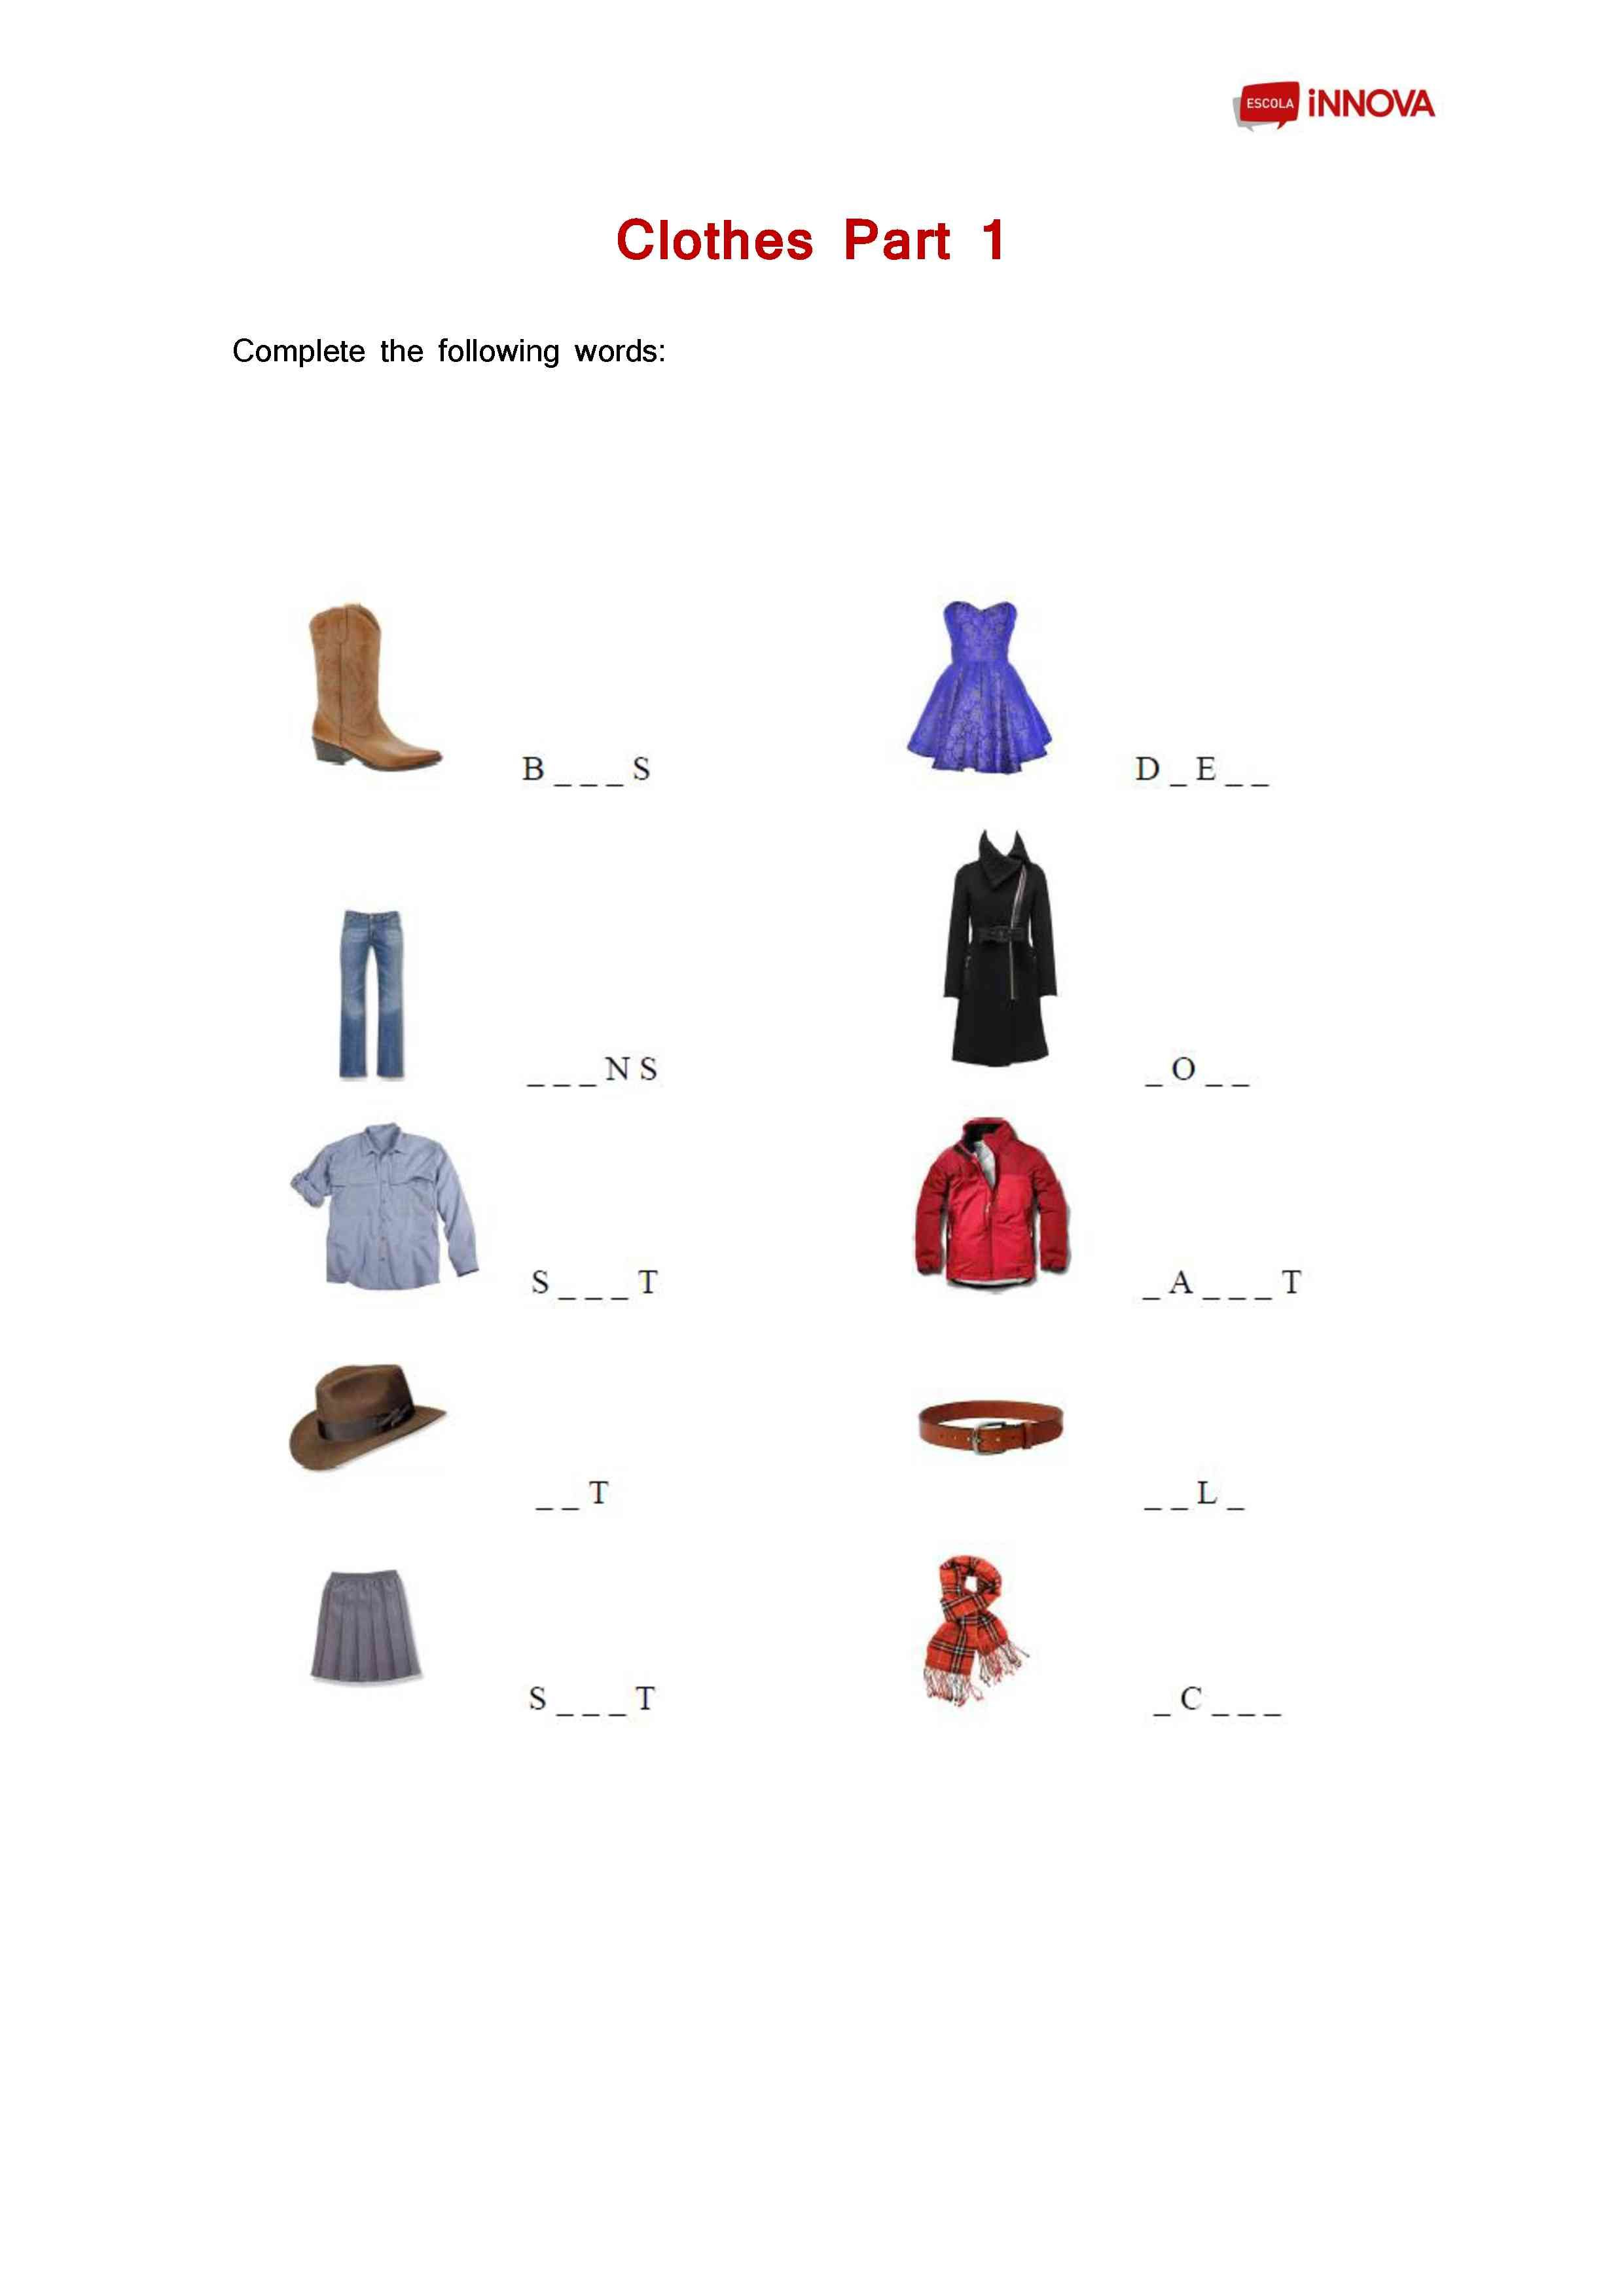 Free 3 Digit Subtraction With Regrouping Worksheets Excel Clothes Worksheet  Primary  La Canaleta  Pinterest  Worksheets Lon Po Po Worksheets Excel with Grammar Activity Worksheets Word Clothes Worksheet  Primary Check Worksheet